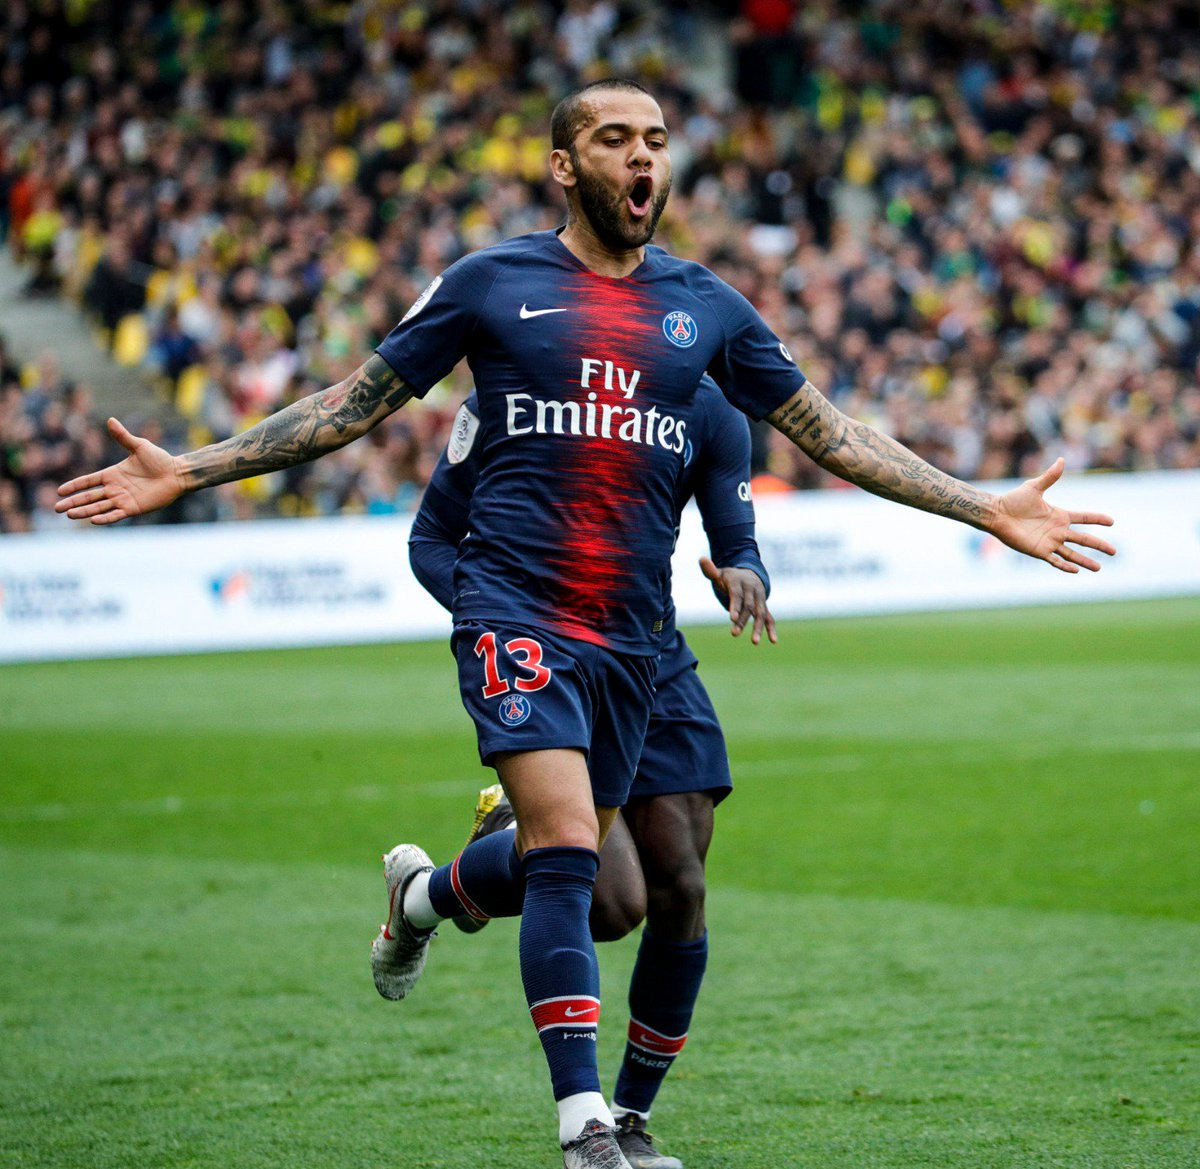 A first league ⚽️  of the season for @DaniAlvesD2! What a ⚽️ it was too! ⚡️   🔴🔵 #AllezParis